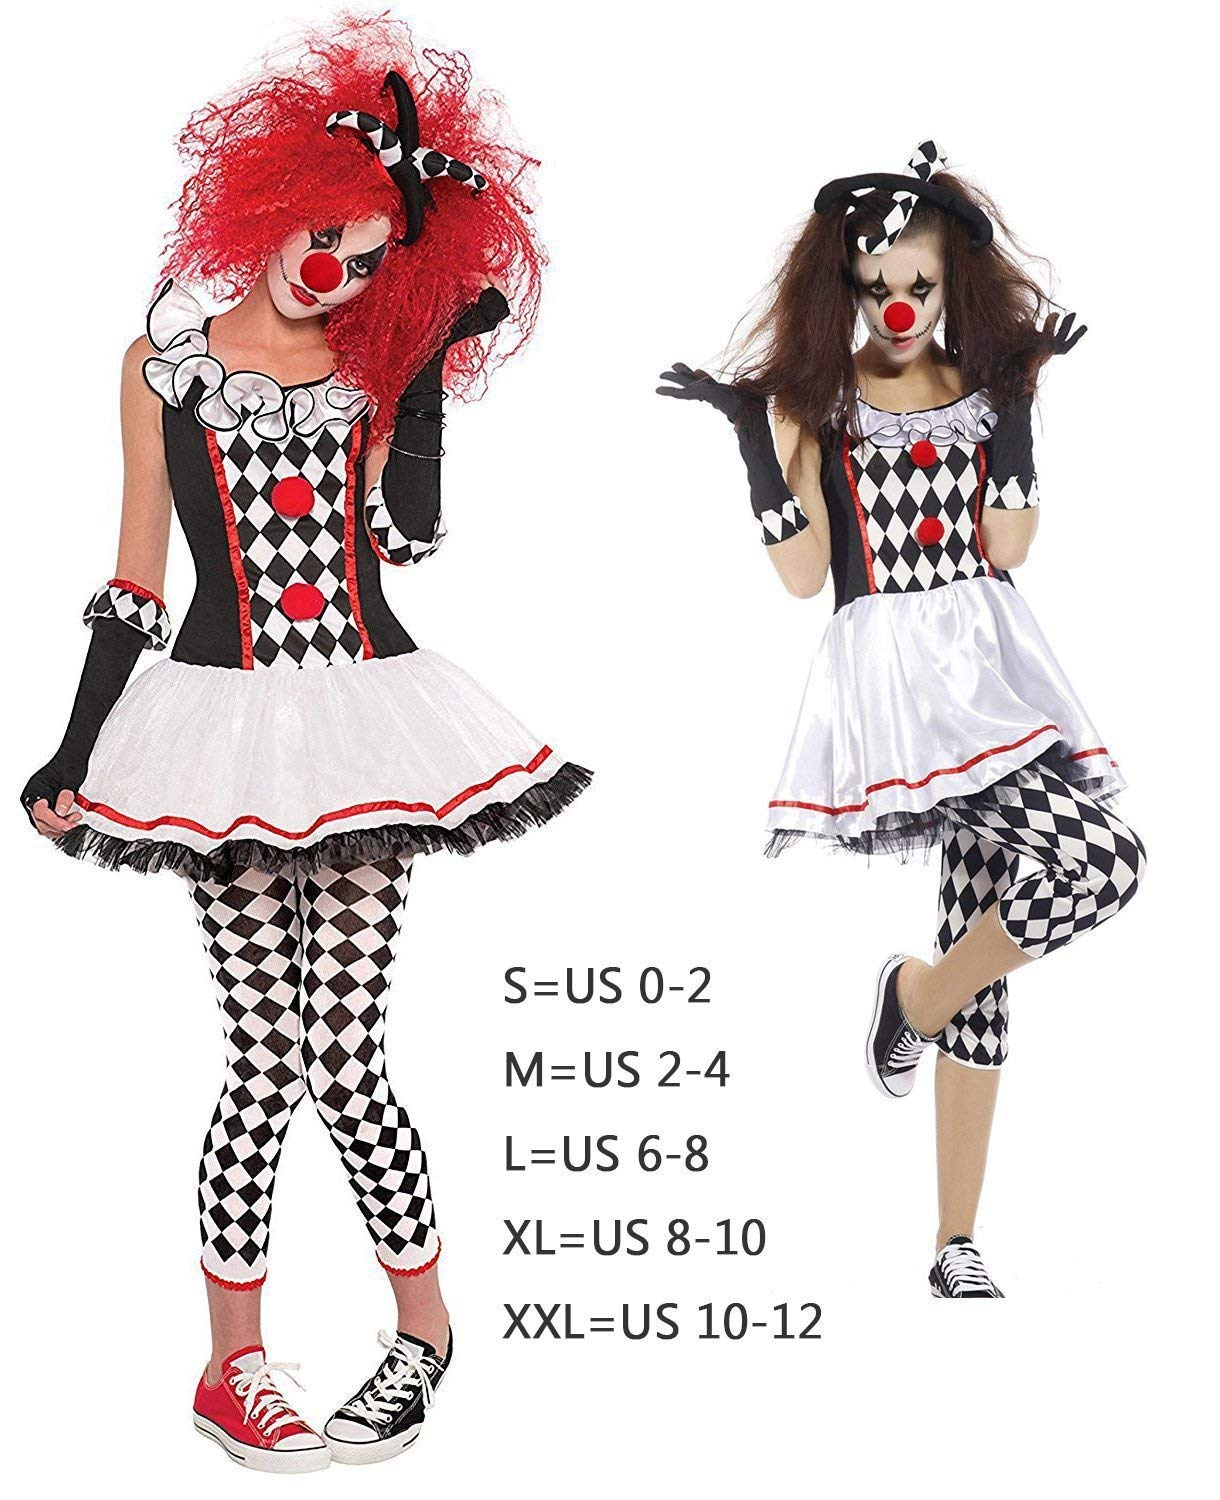 bbf61a0bbc NonEcho Women's Halloween Costume Harlequin Clown Outfit Kit, Clown Wig,  Clown Nose